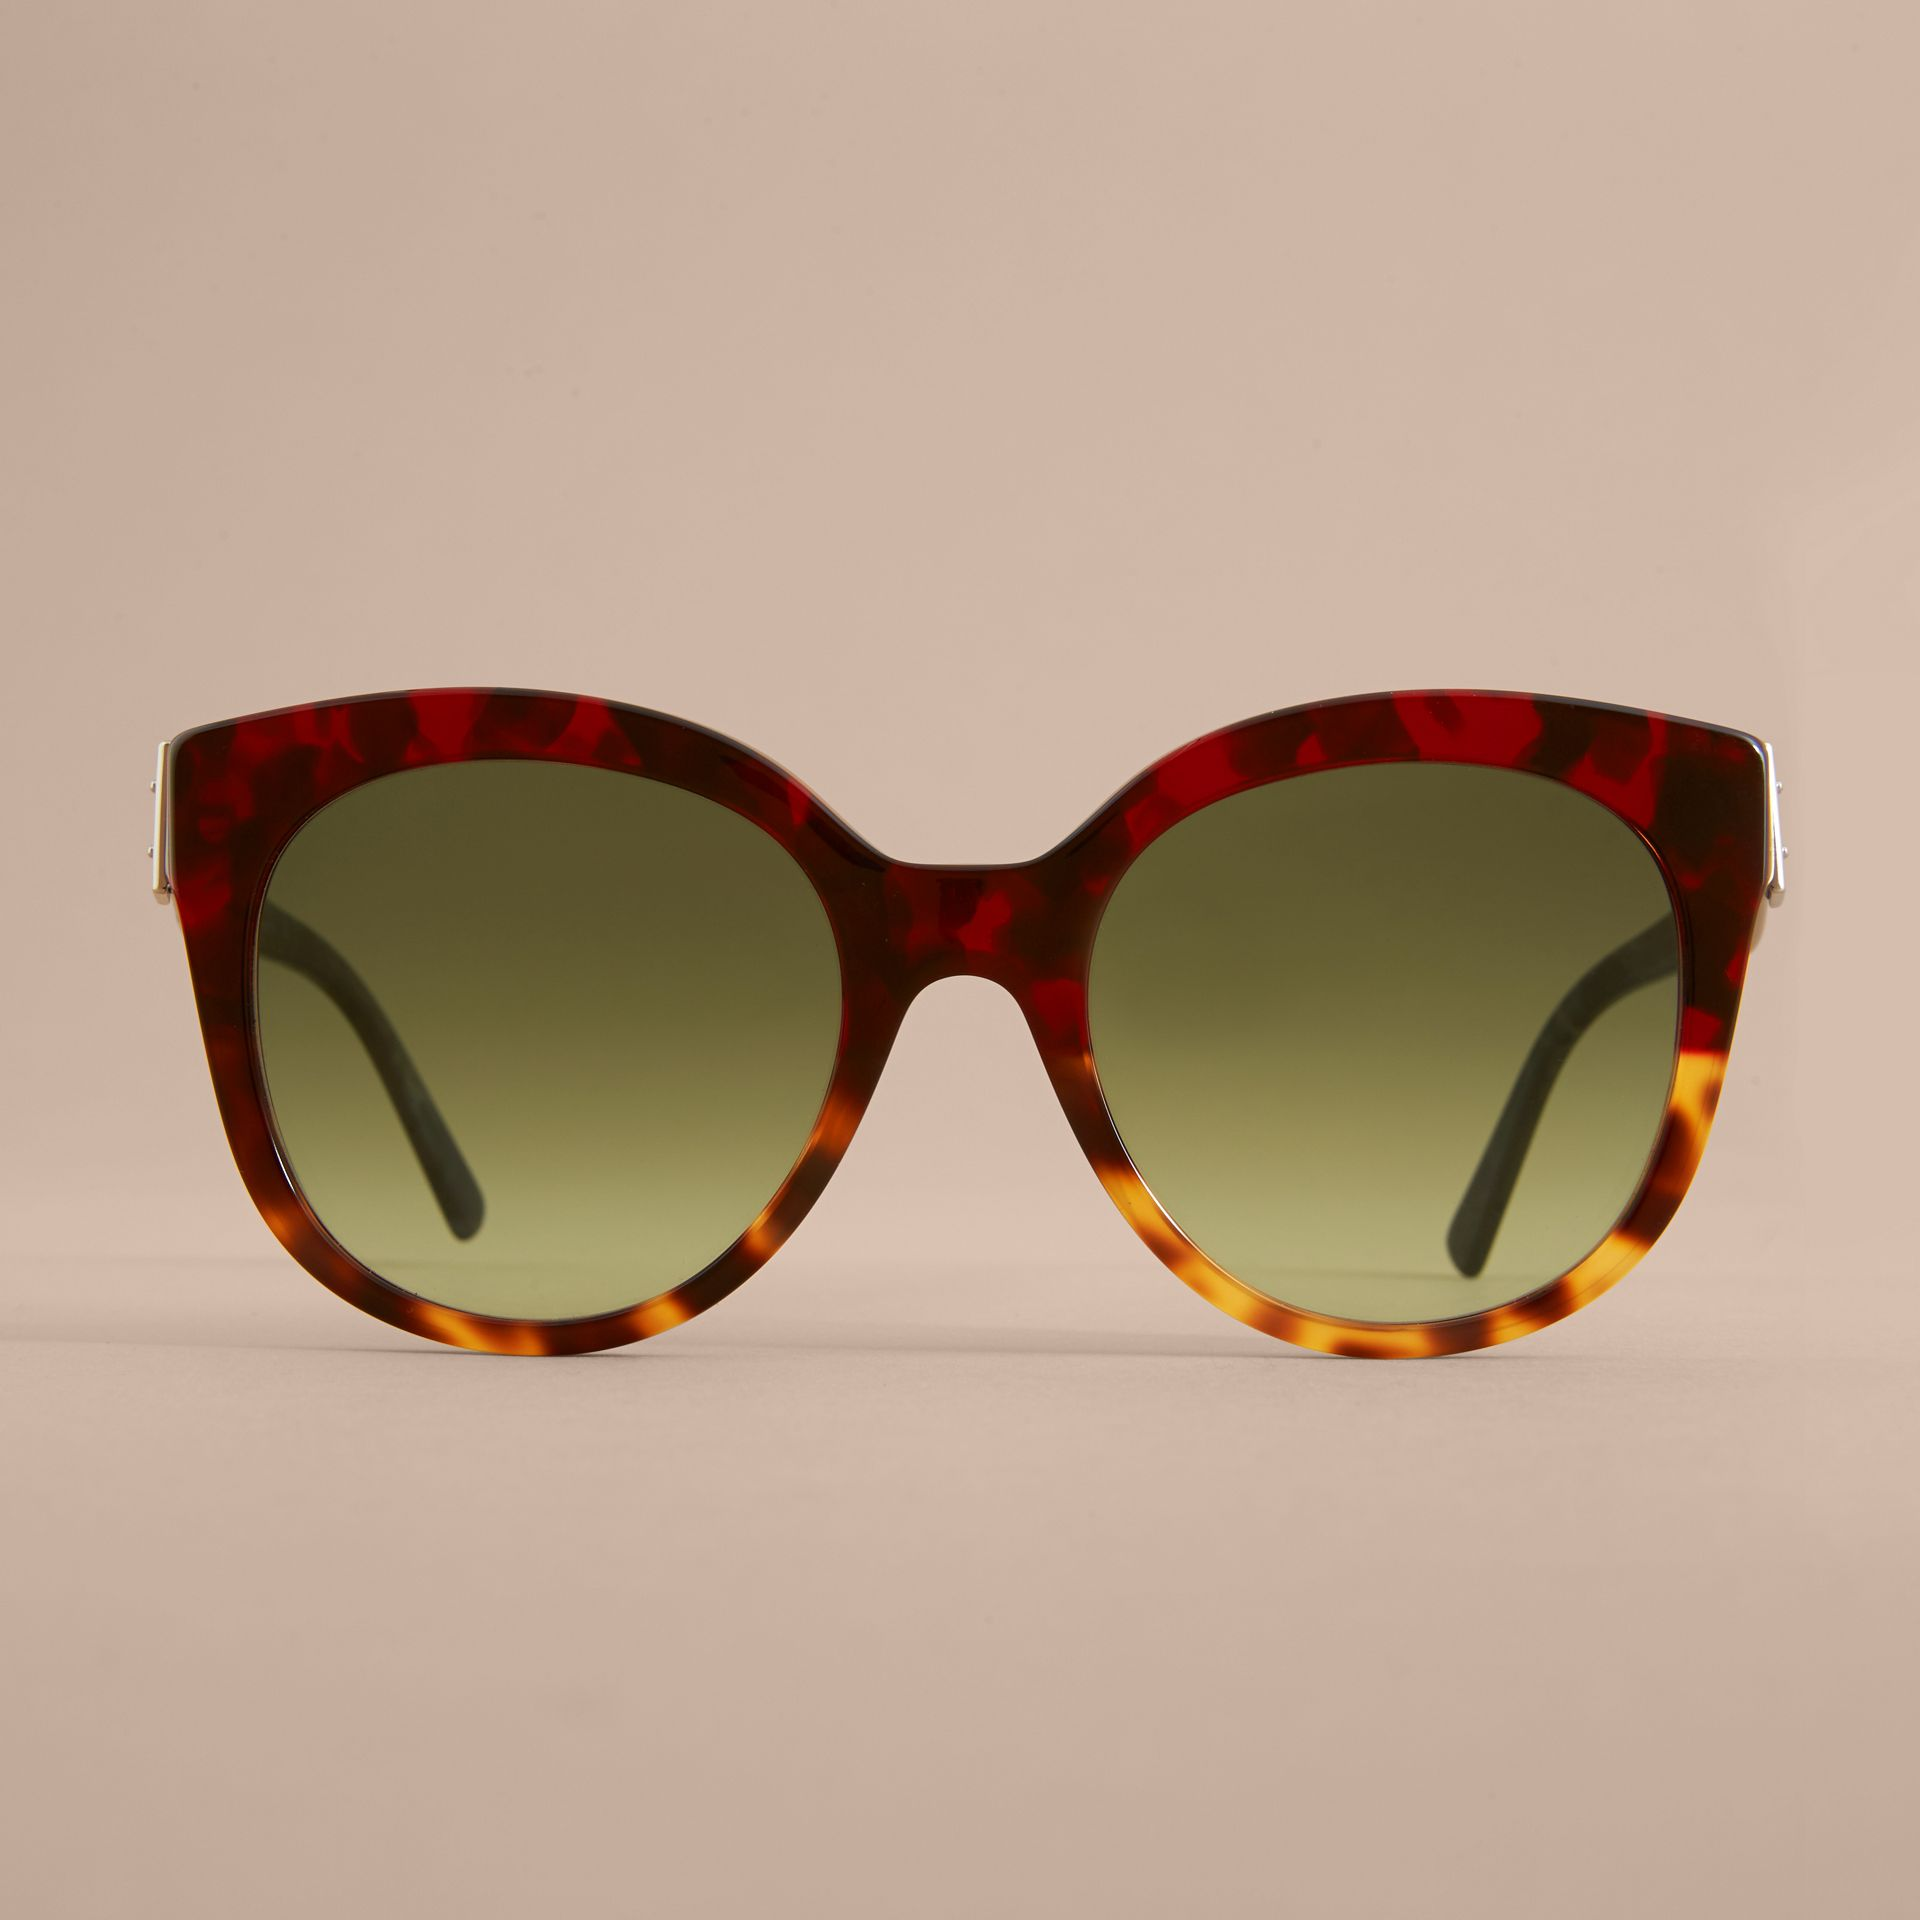 Buckle Detail Cat-eye Frame Sunglasses in Amber Yellow - Women | Burberry United States - gallery image 2